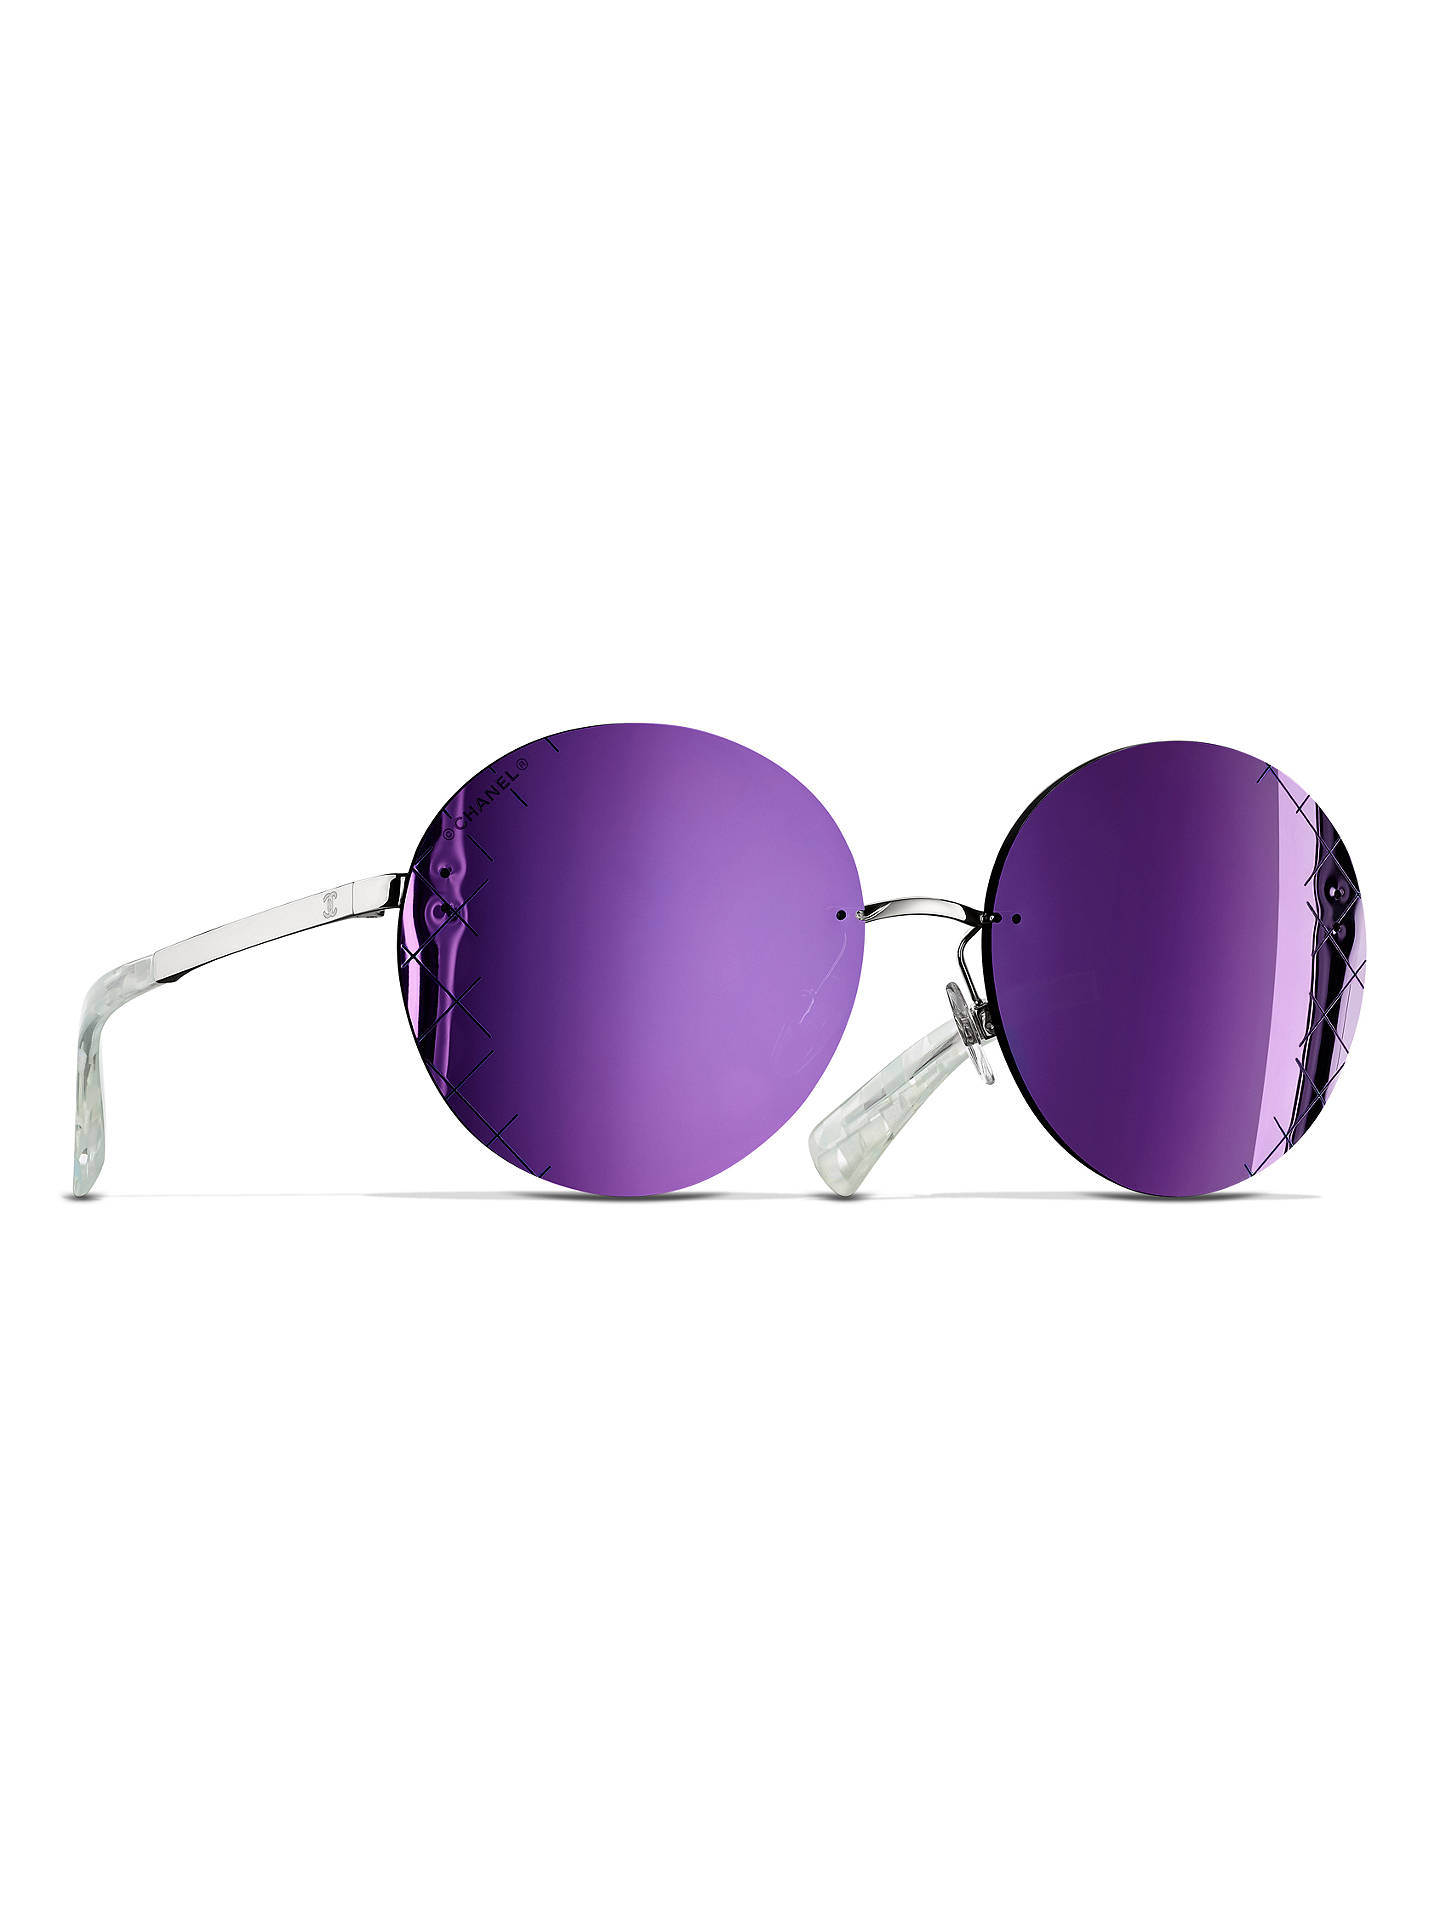 078771bccfe BuyCHANEL Round Sunglasses CH4216 Silver Purple Online at johnlewis.com ...